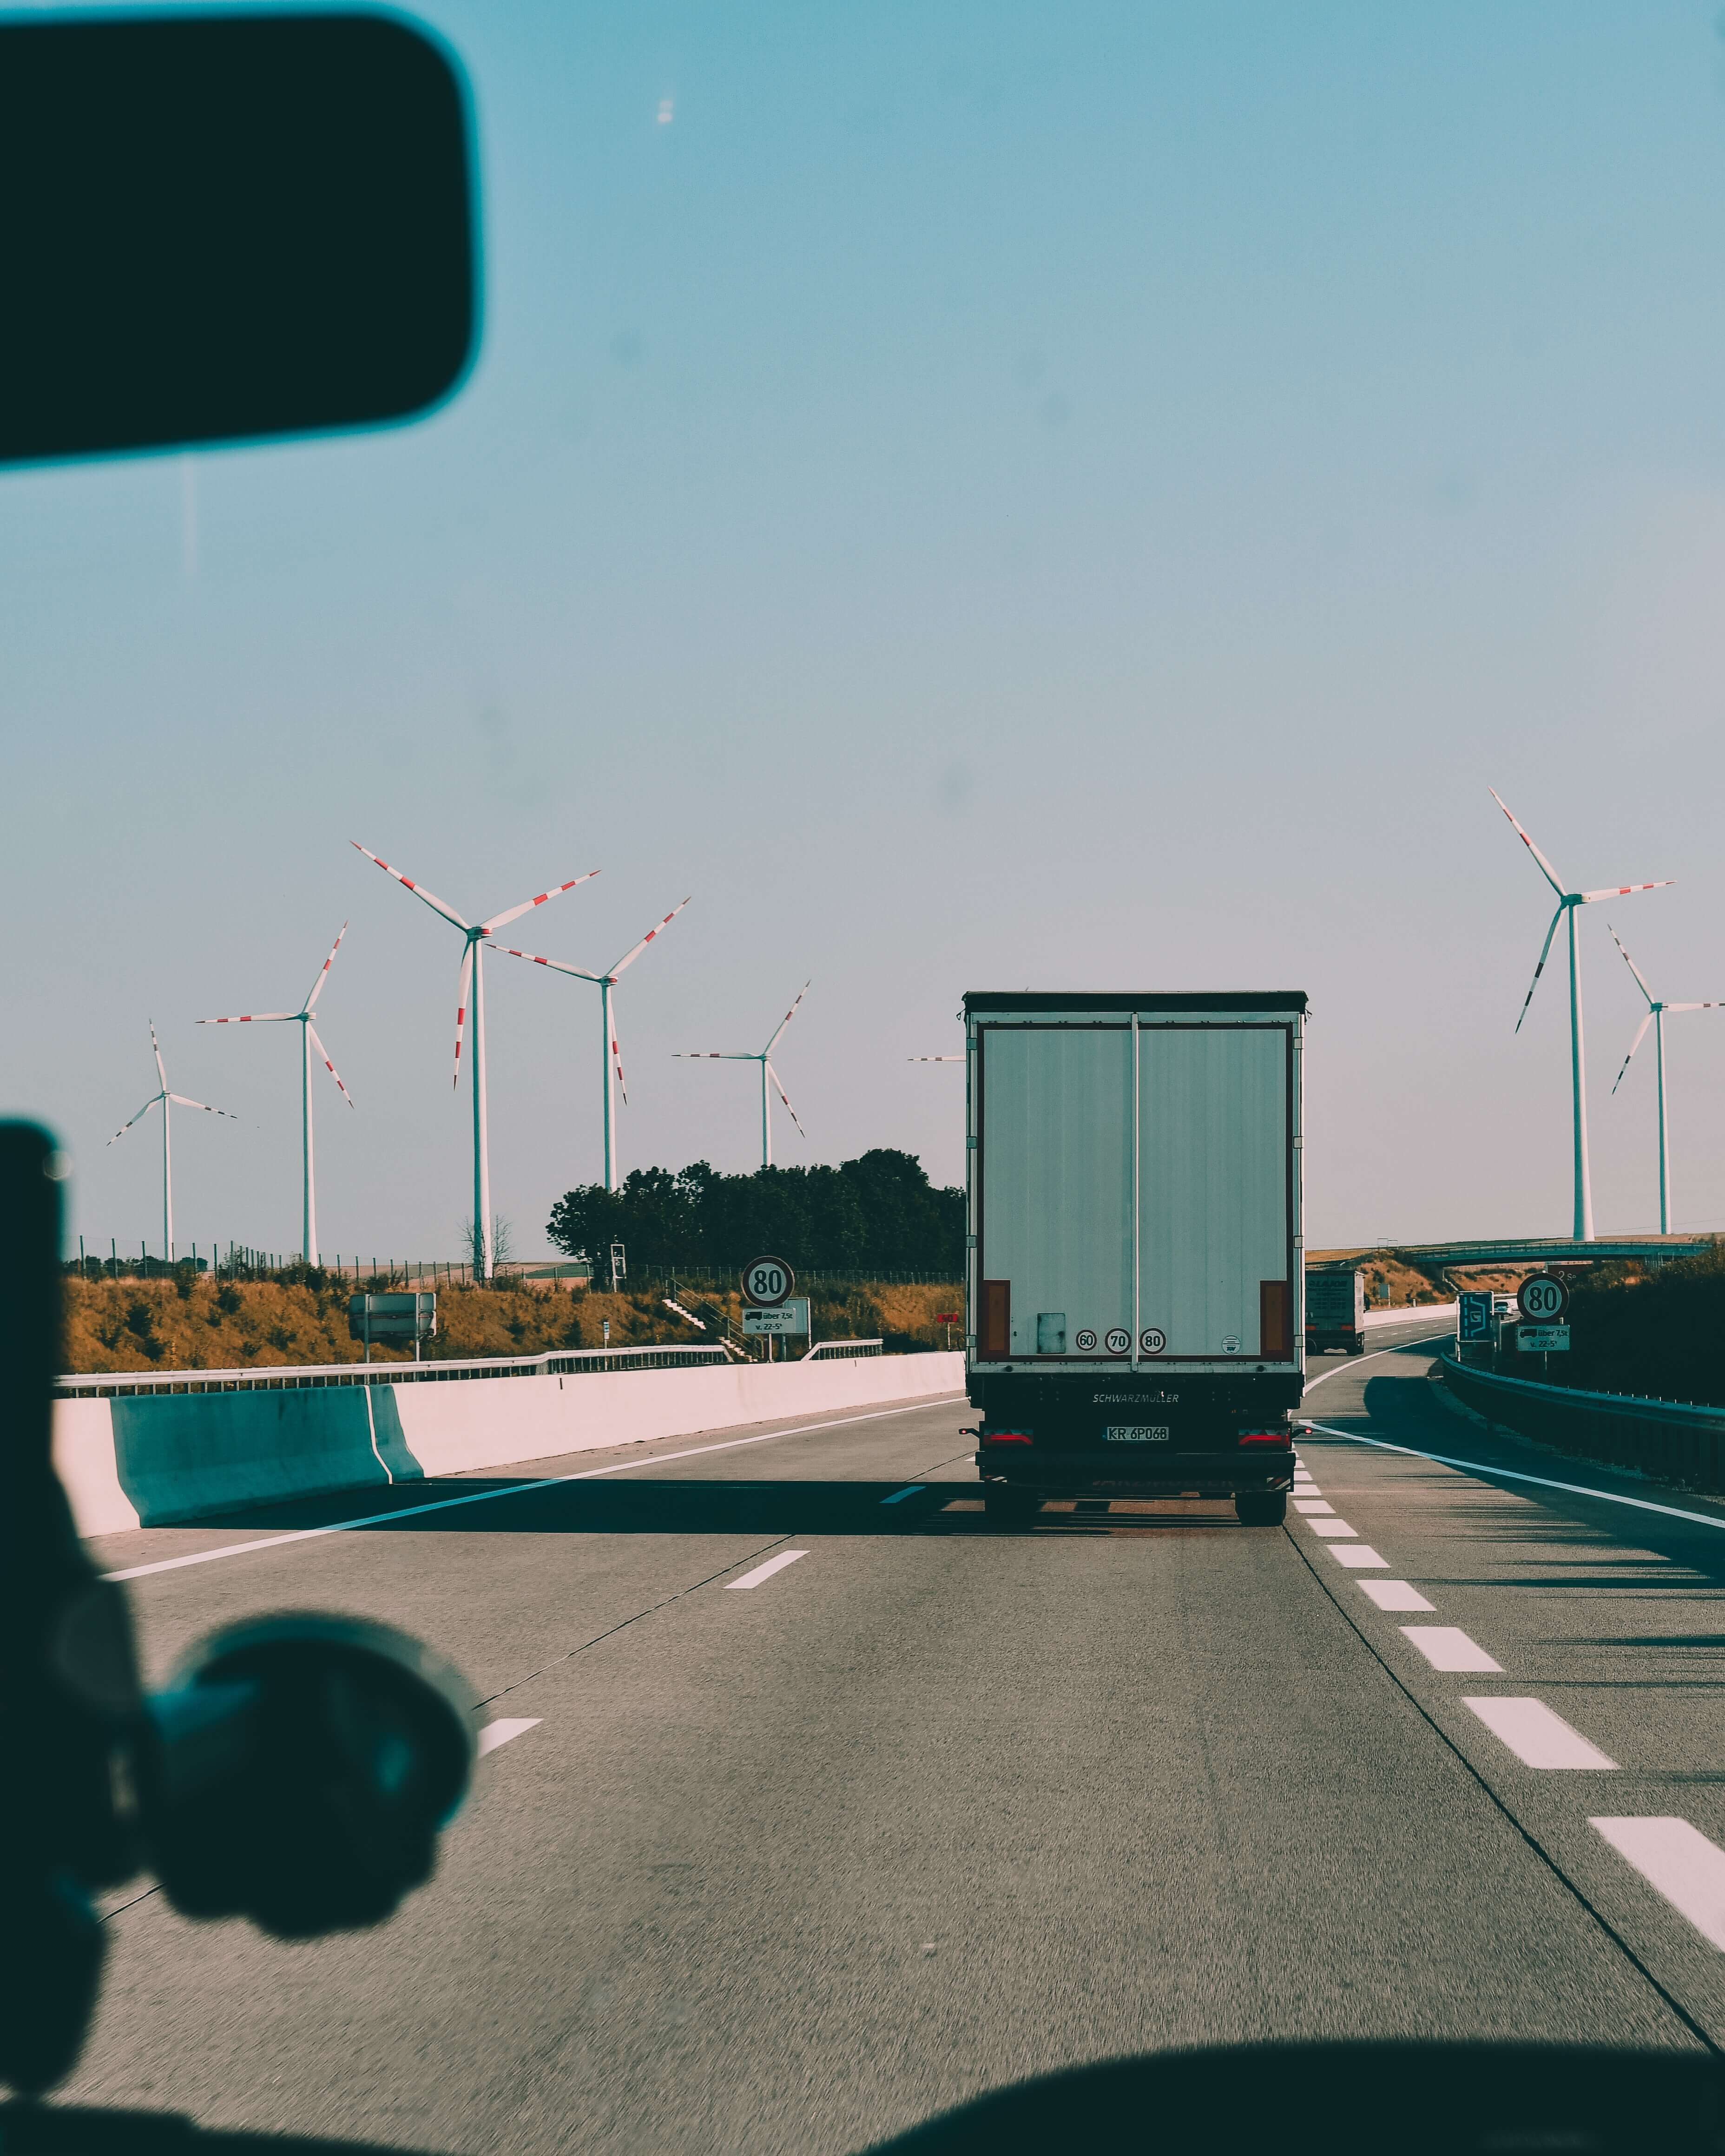 container trucks on the road